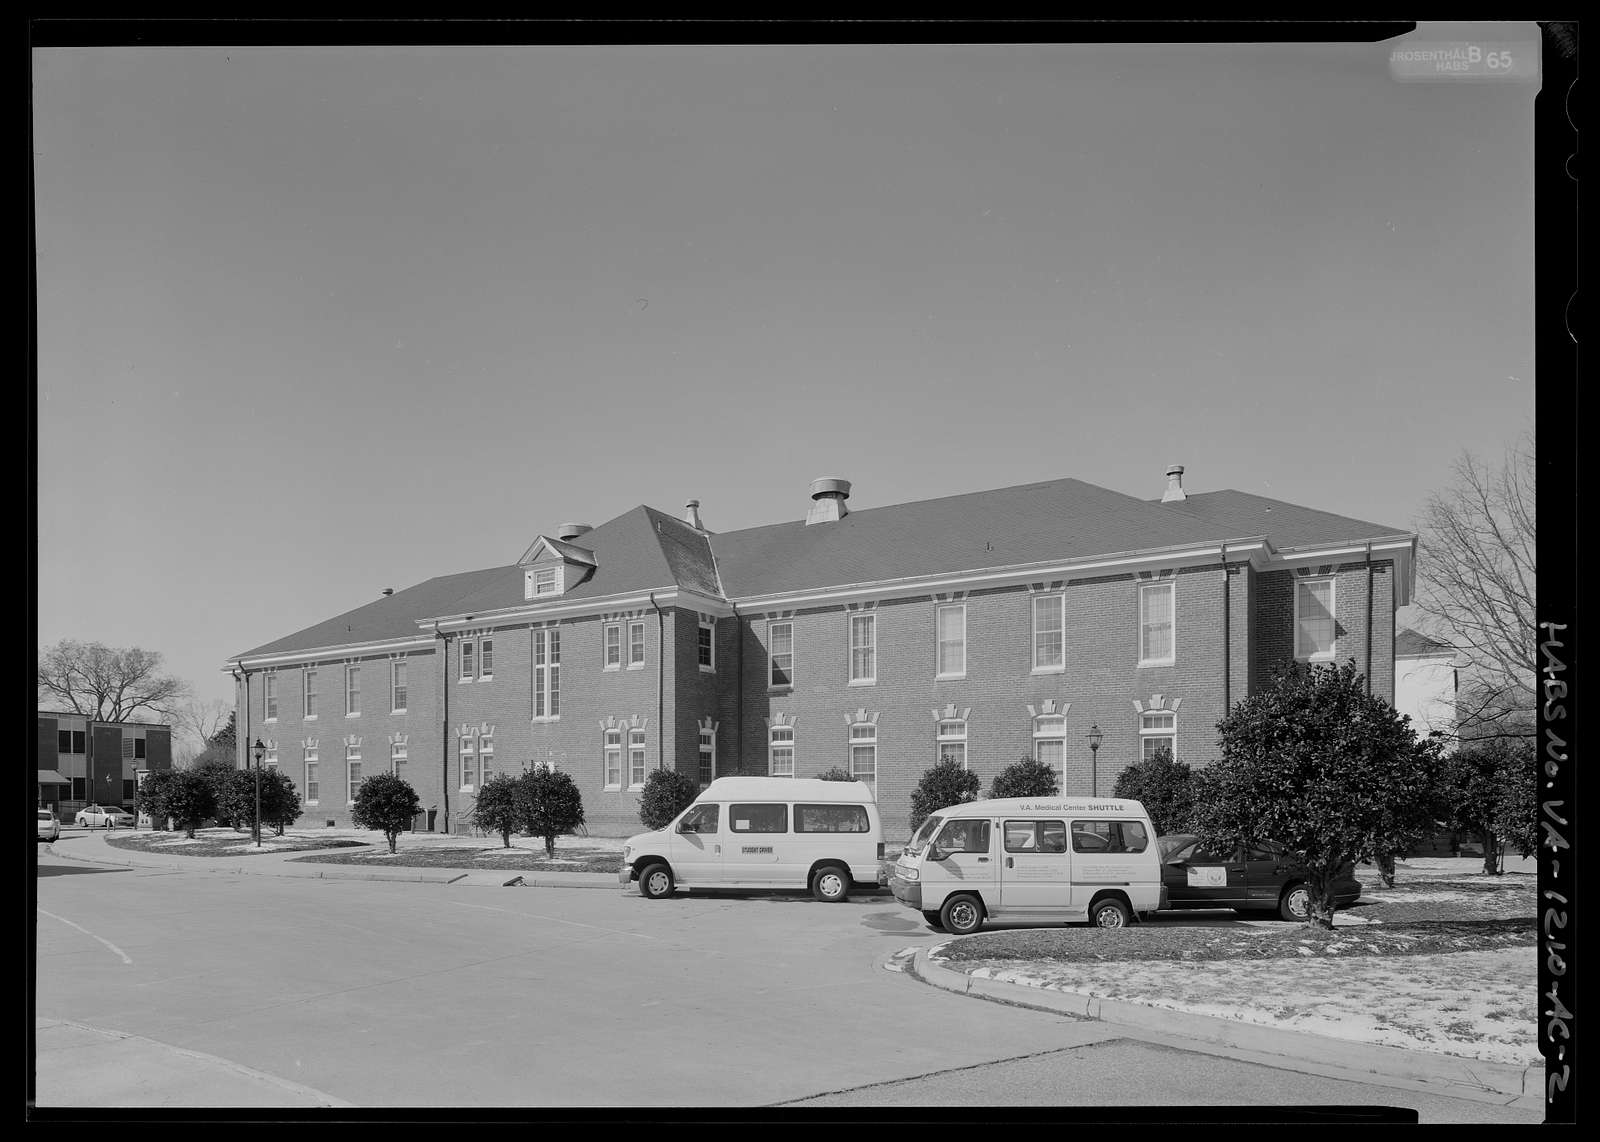 Southern Branch of the National Home for Disabled Volunteer Soldiers , Building 66, 100 Emancipation Drive, Hampton, Hampton, VA